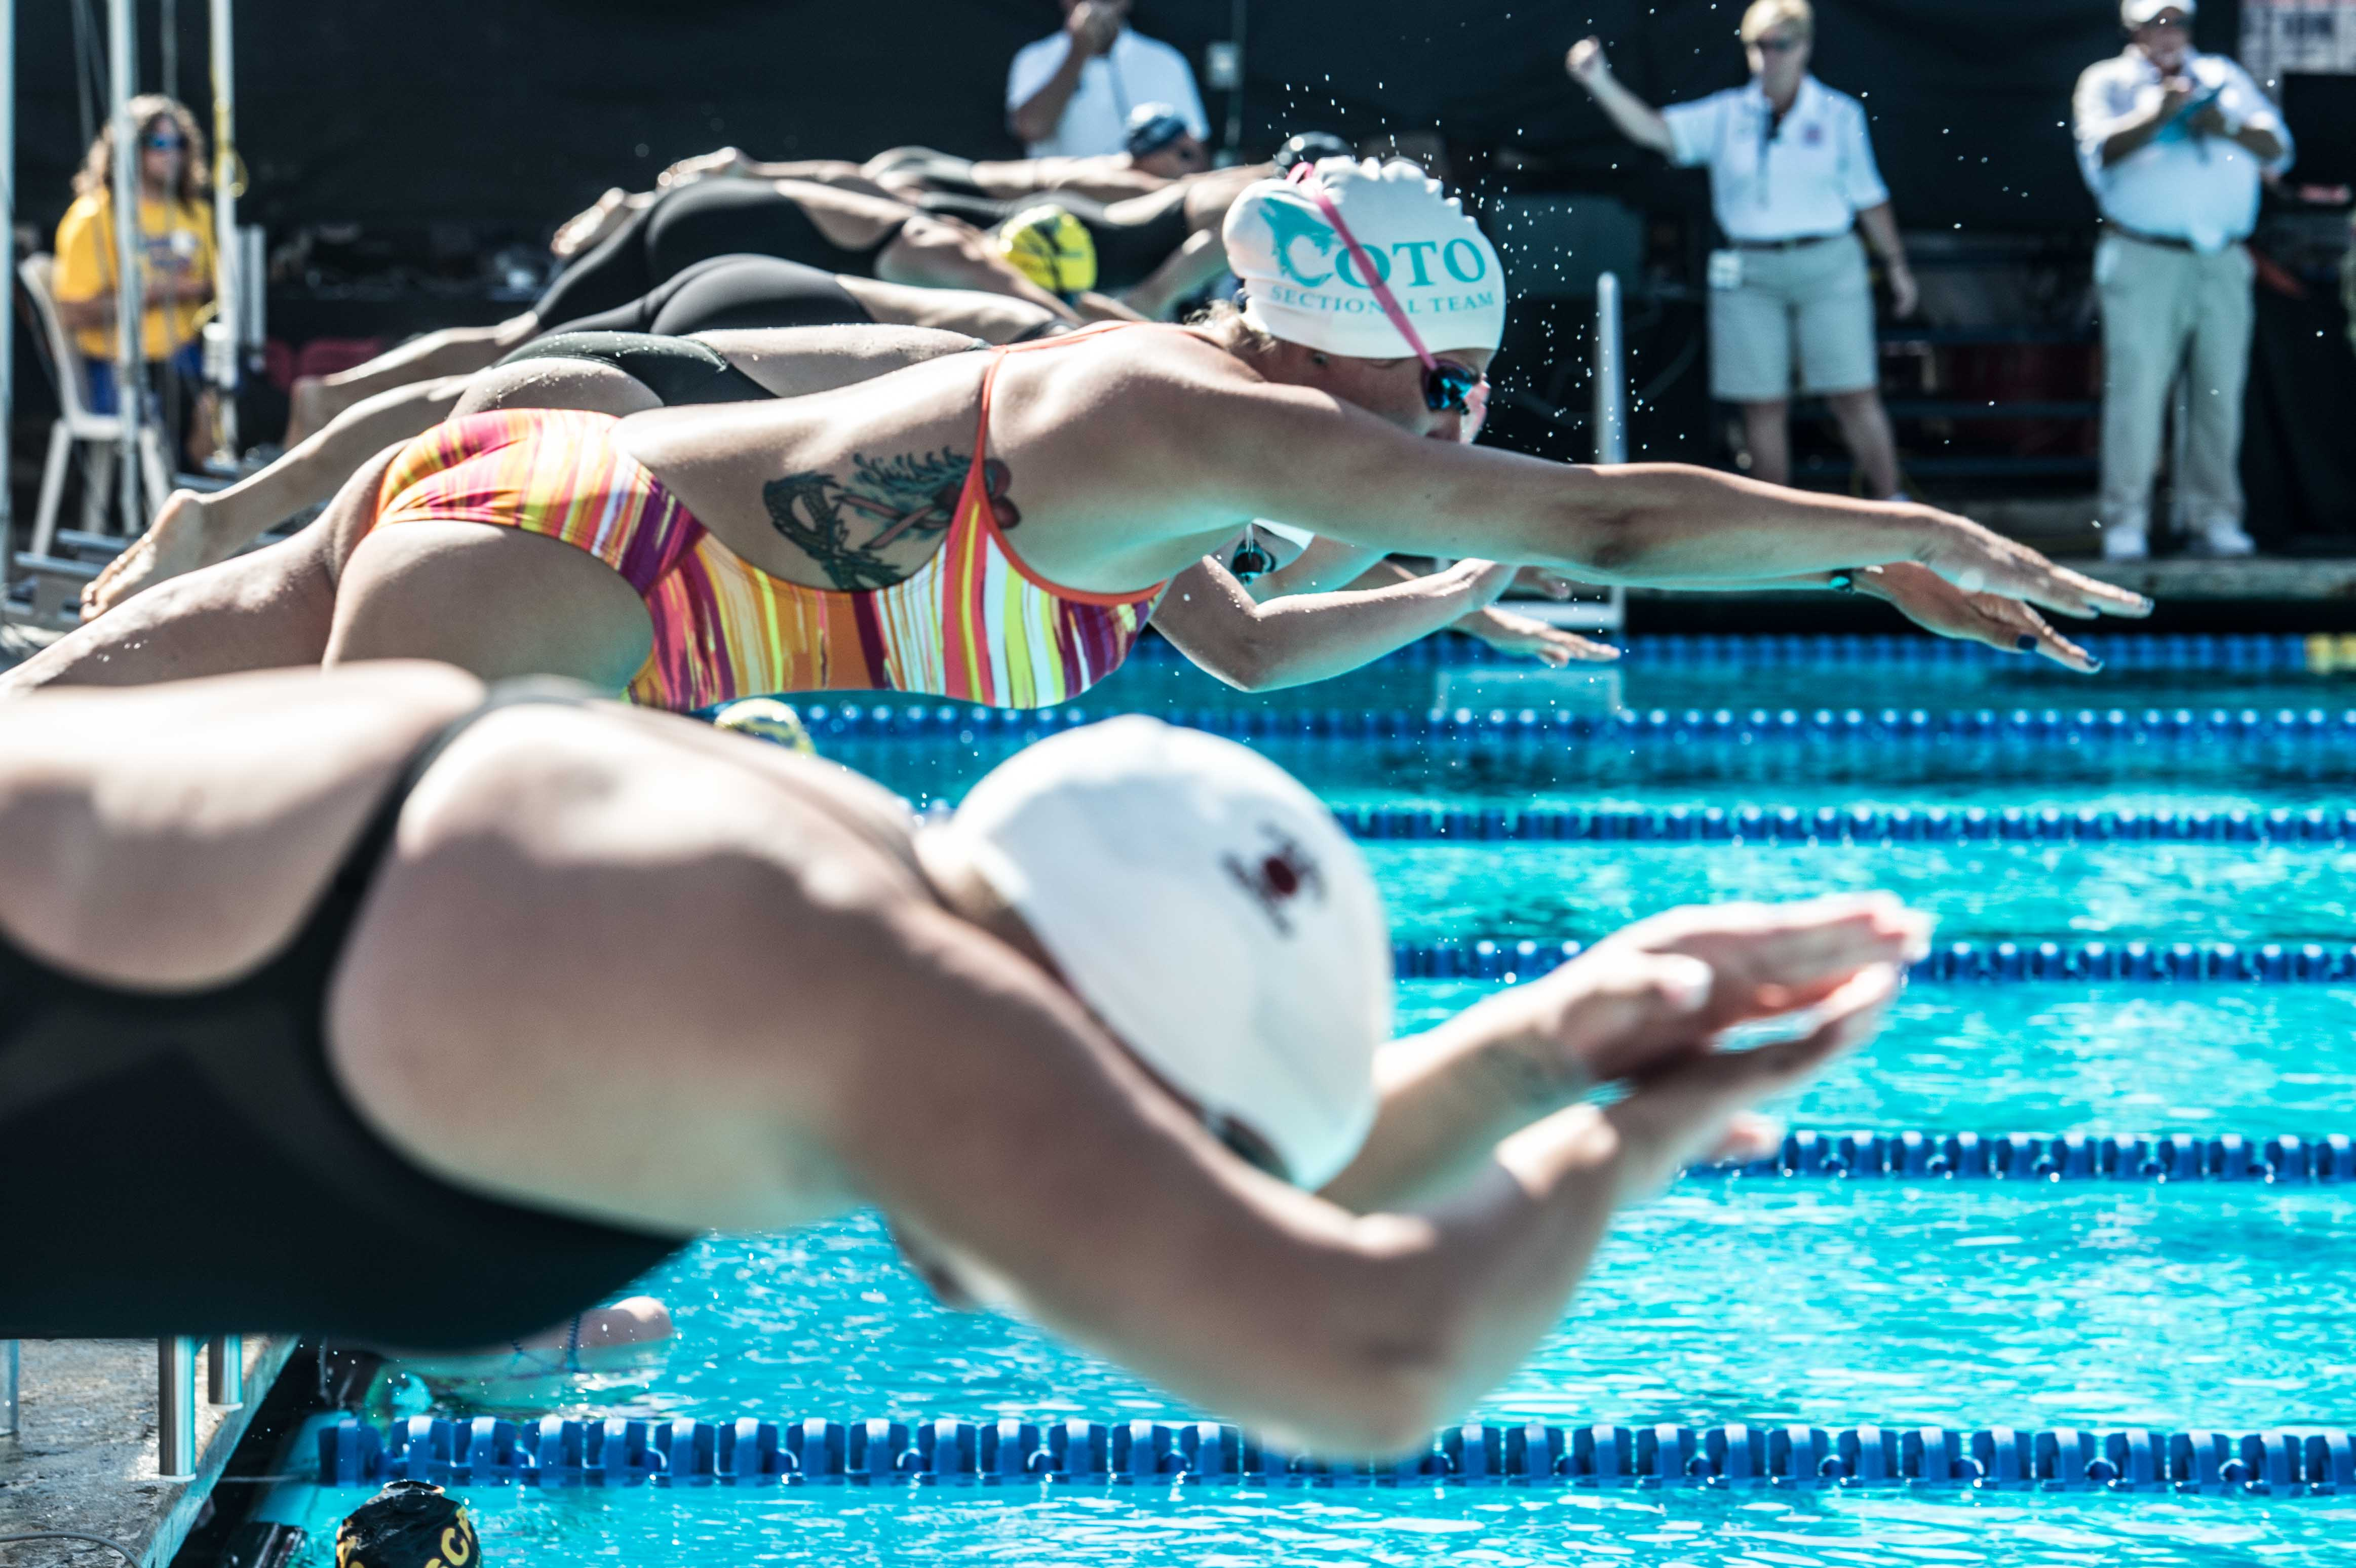 5 things to know about the swimmer's body